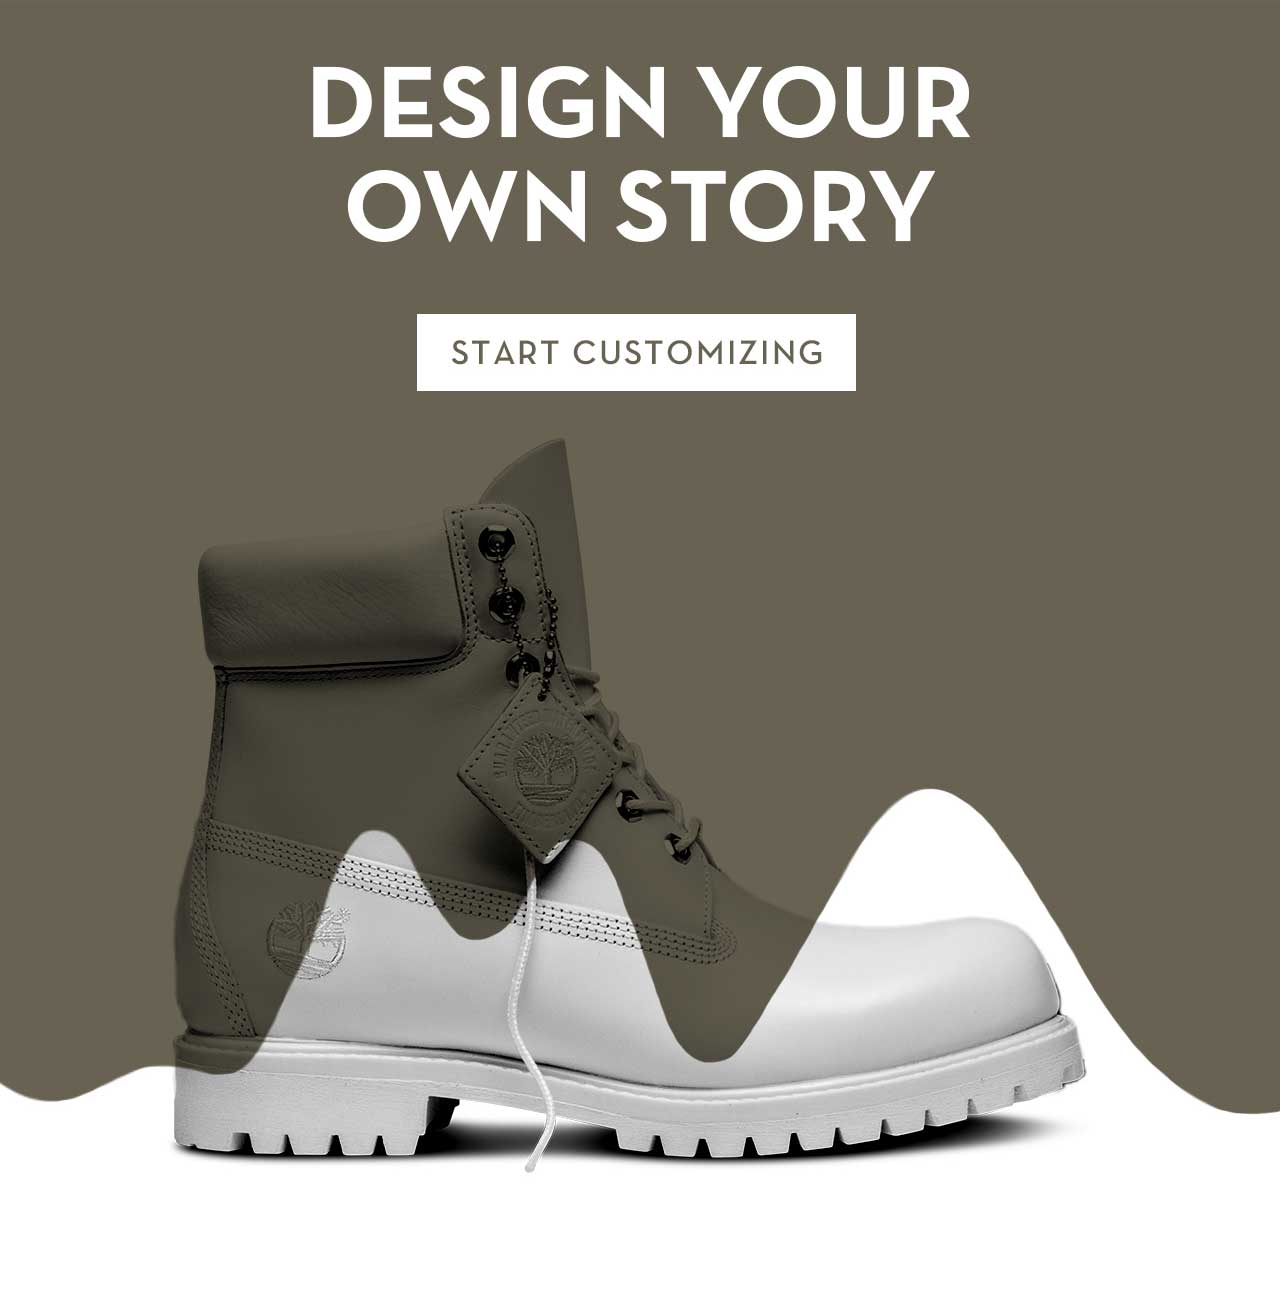 Design Your Own Story Start Customizing